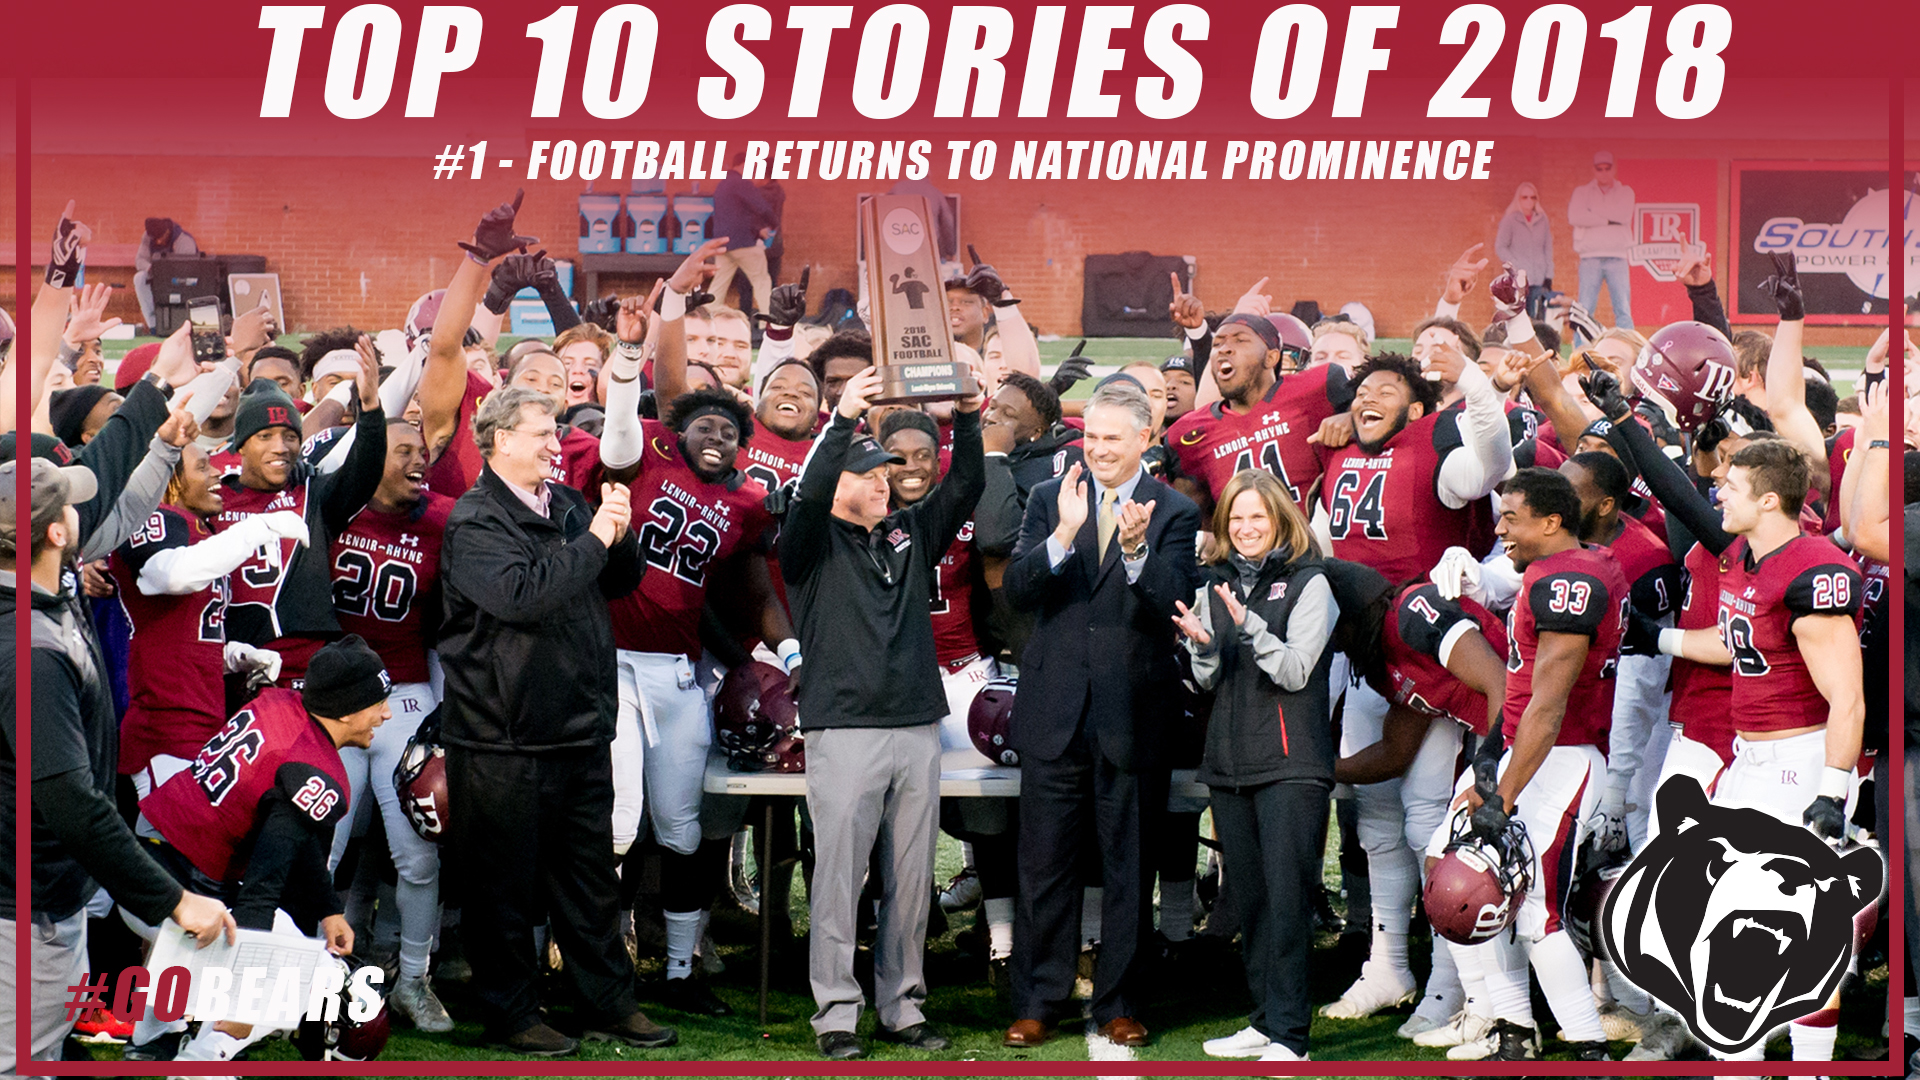 Top 10 Stories of 2018: #1 - Football Returns to National Prominence